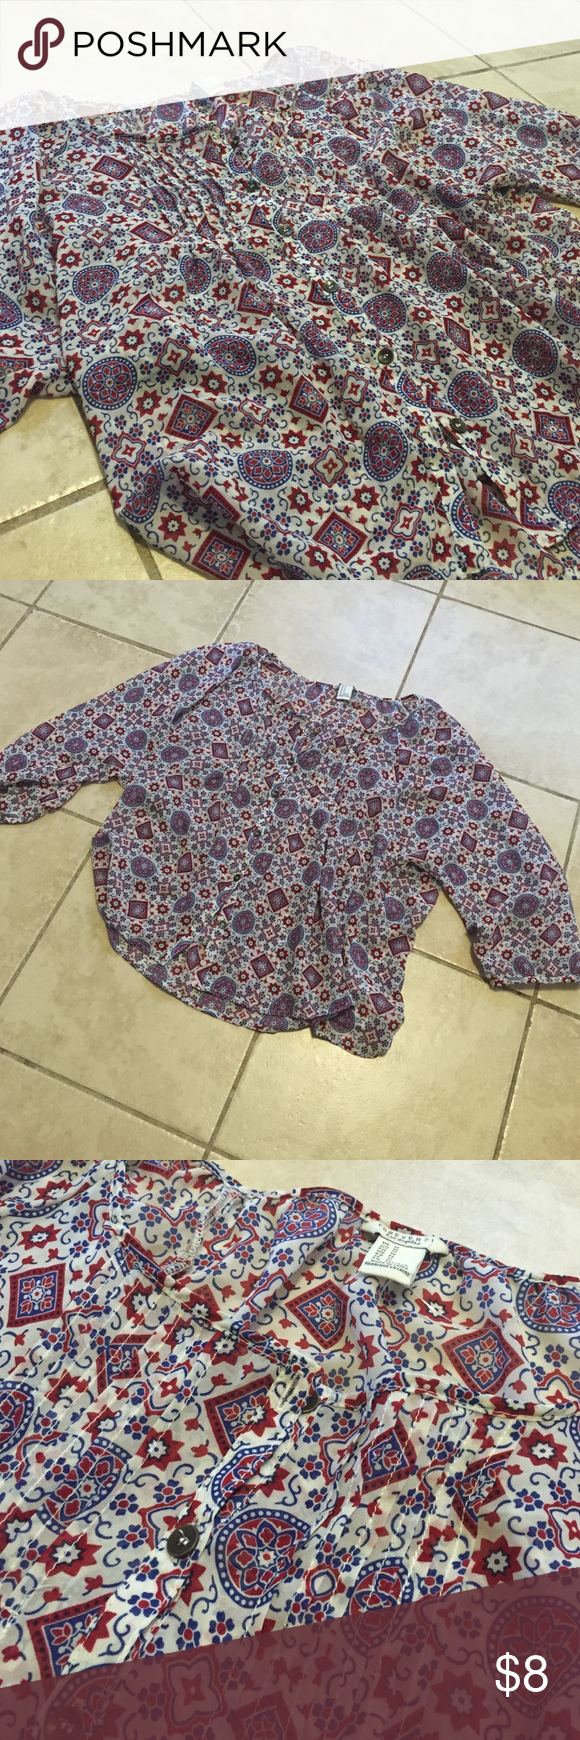 Forever 21 NWOT medium blouse NWOT / never worn cute printed forever 21 blouse! Nice smooth chiffon material & a size medium. Cute button / detail on front shown in photos. Forever 21 Tops Blouses